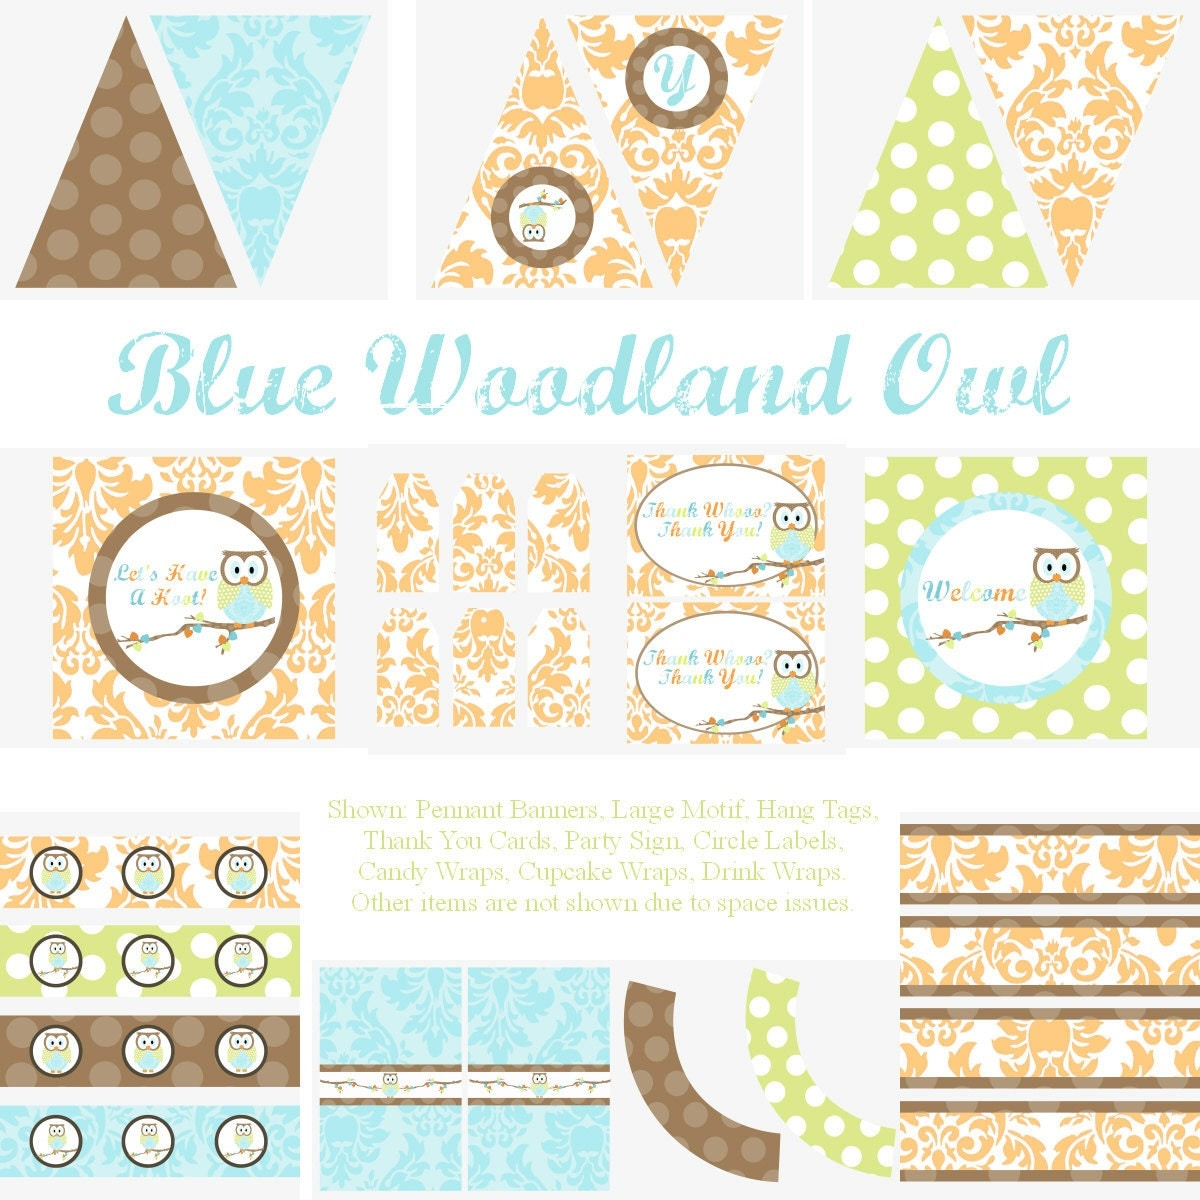 Woodland owl party decorations for birthday party or baby shower diy